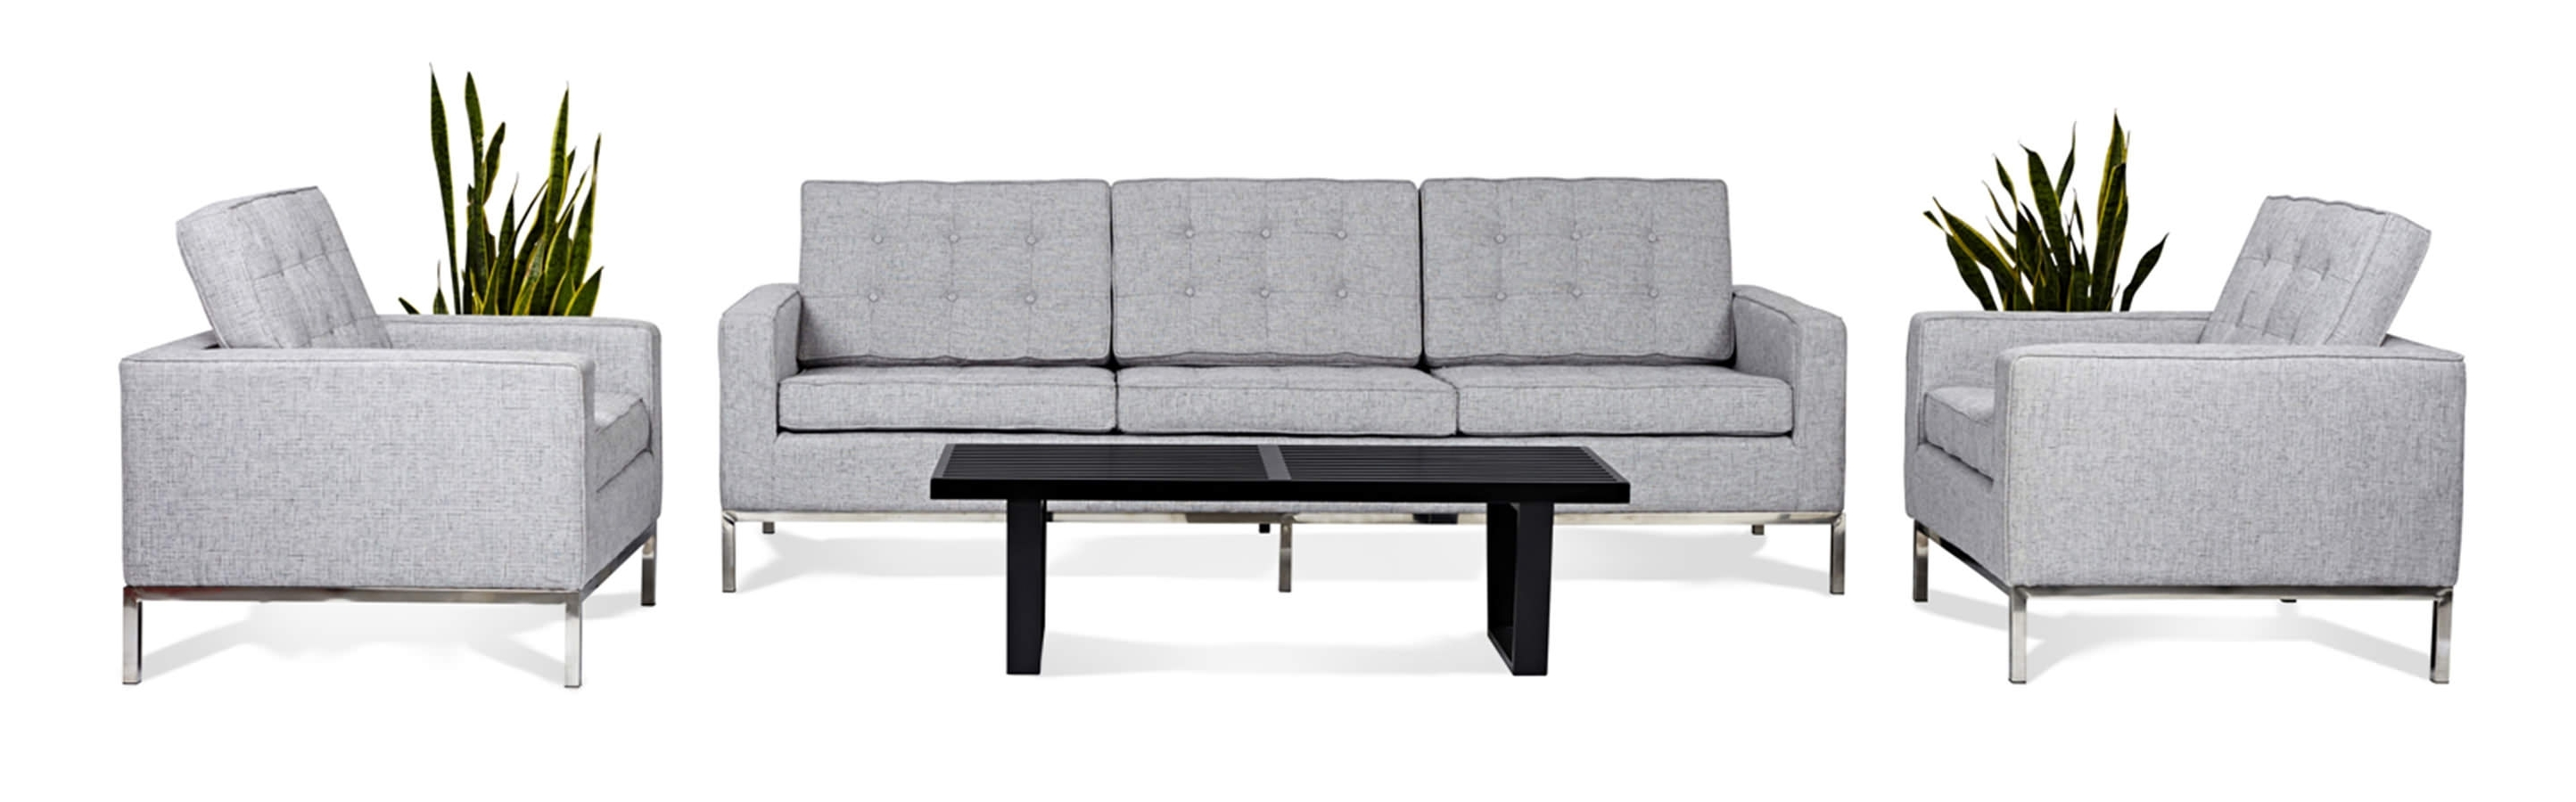 Recent Florence Knoll Style Living Room Sets Intended For Florence Knoll Style Sofas (View 18 of 20)